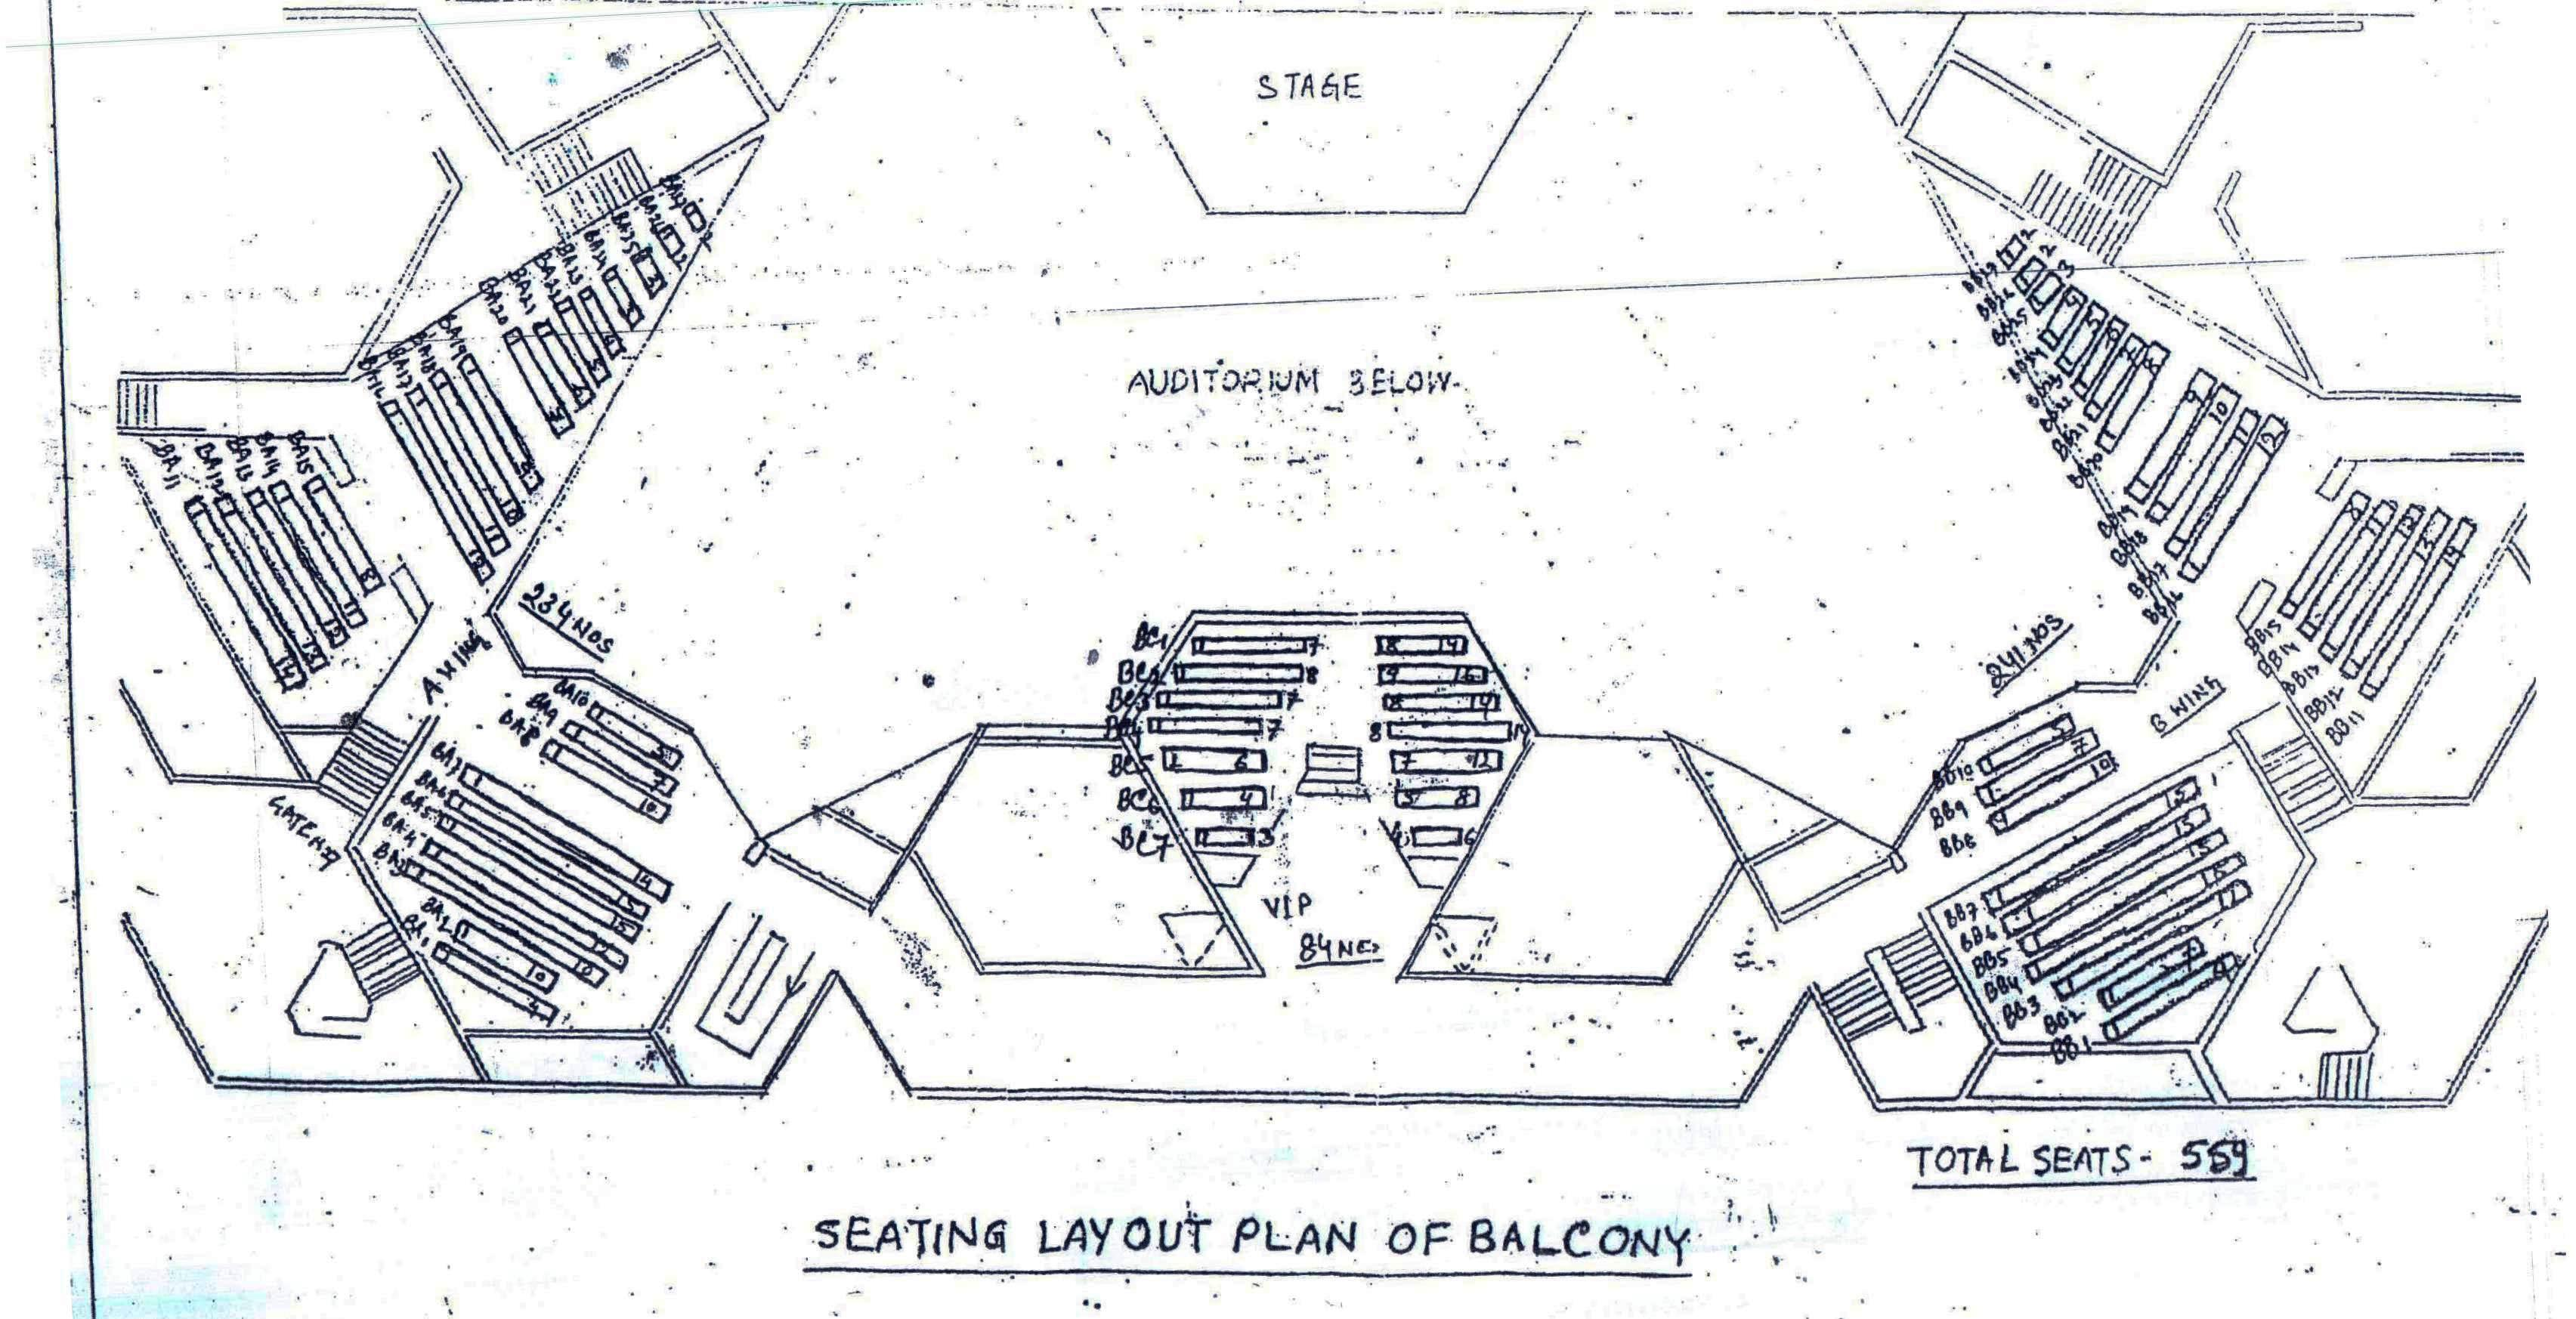 Auditorium - I Seating plan - Balcony